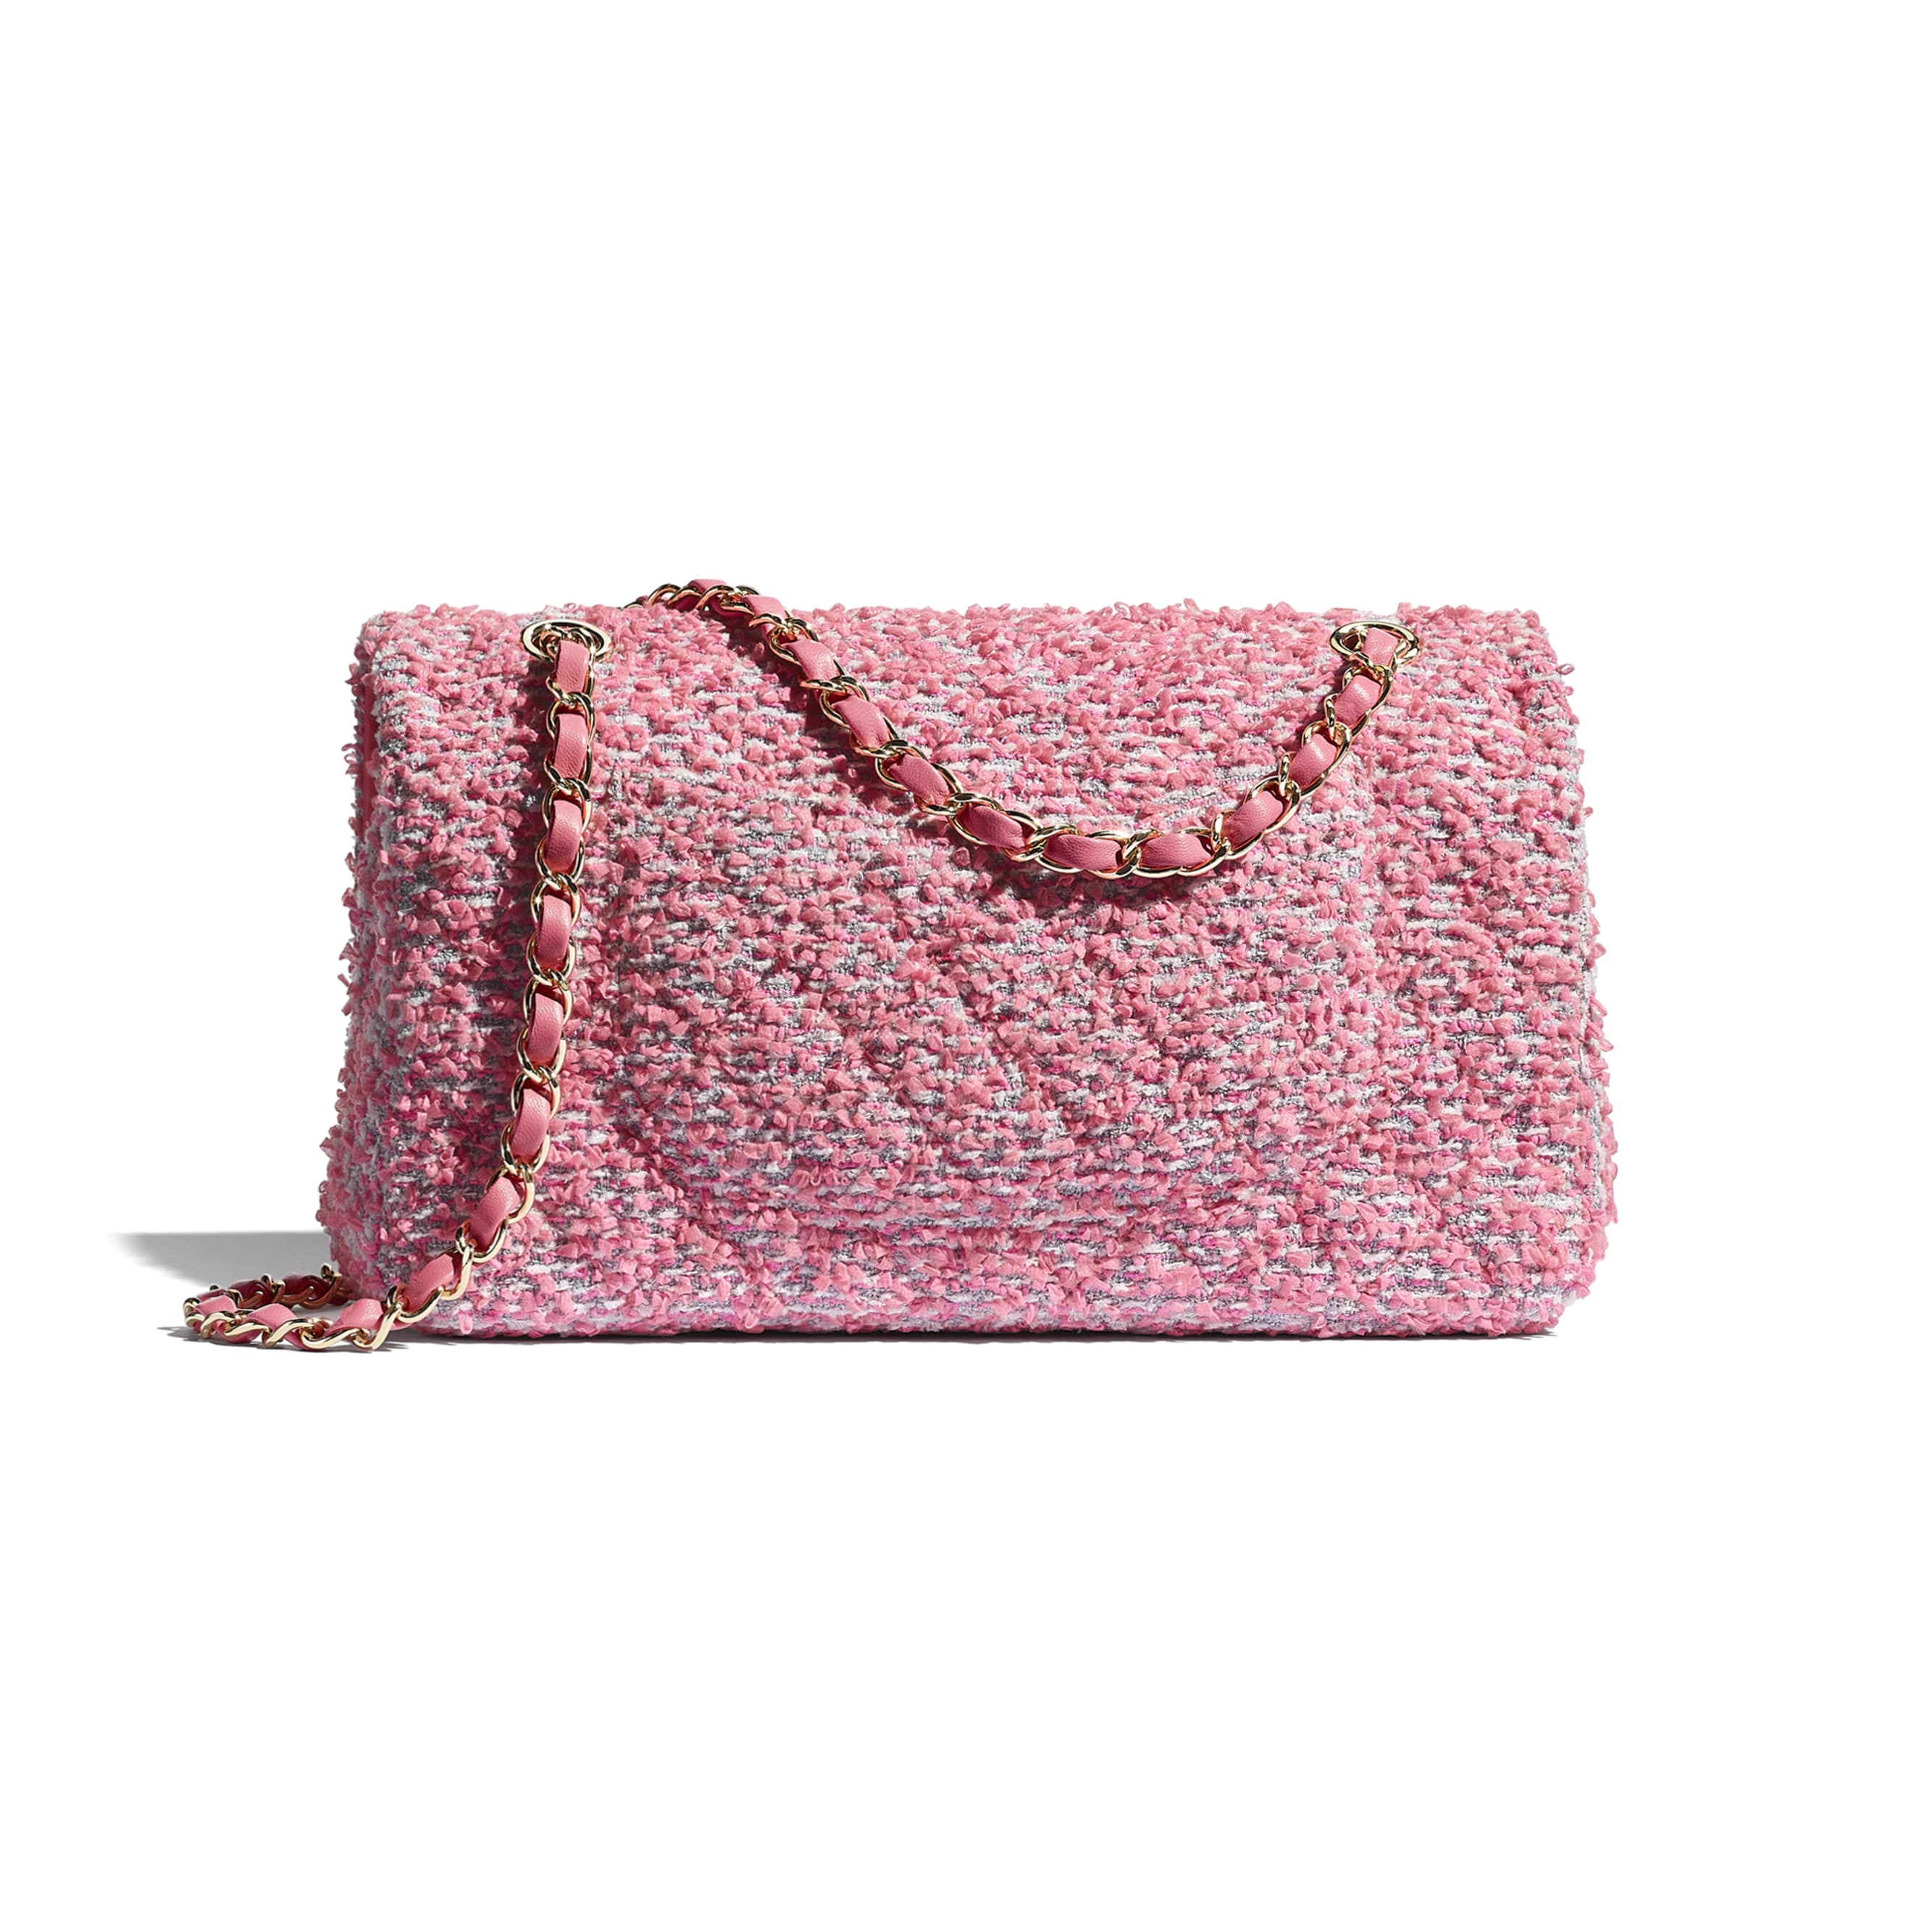 Classic Handbag - Pink, White & Gray - Tweed & Gold Metal - CHANEL - Alternative view - see standard sized version